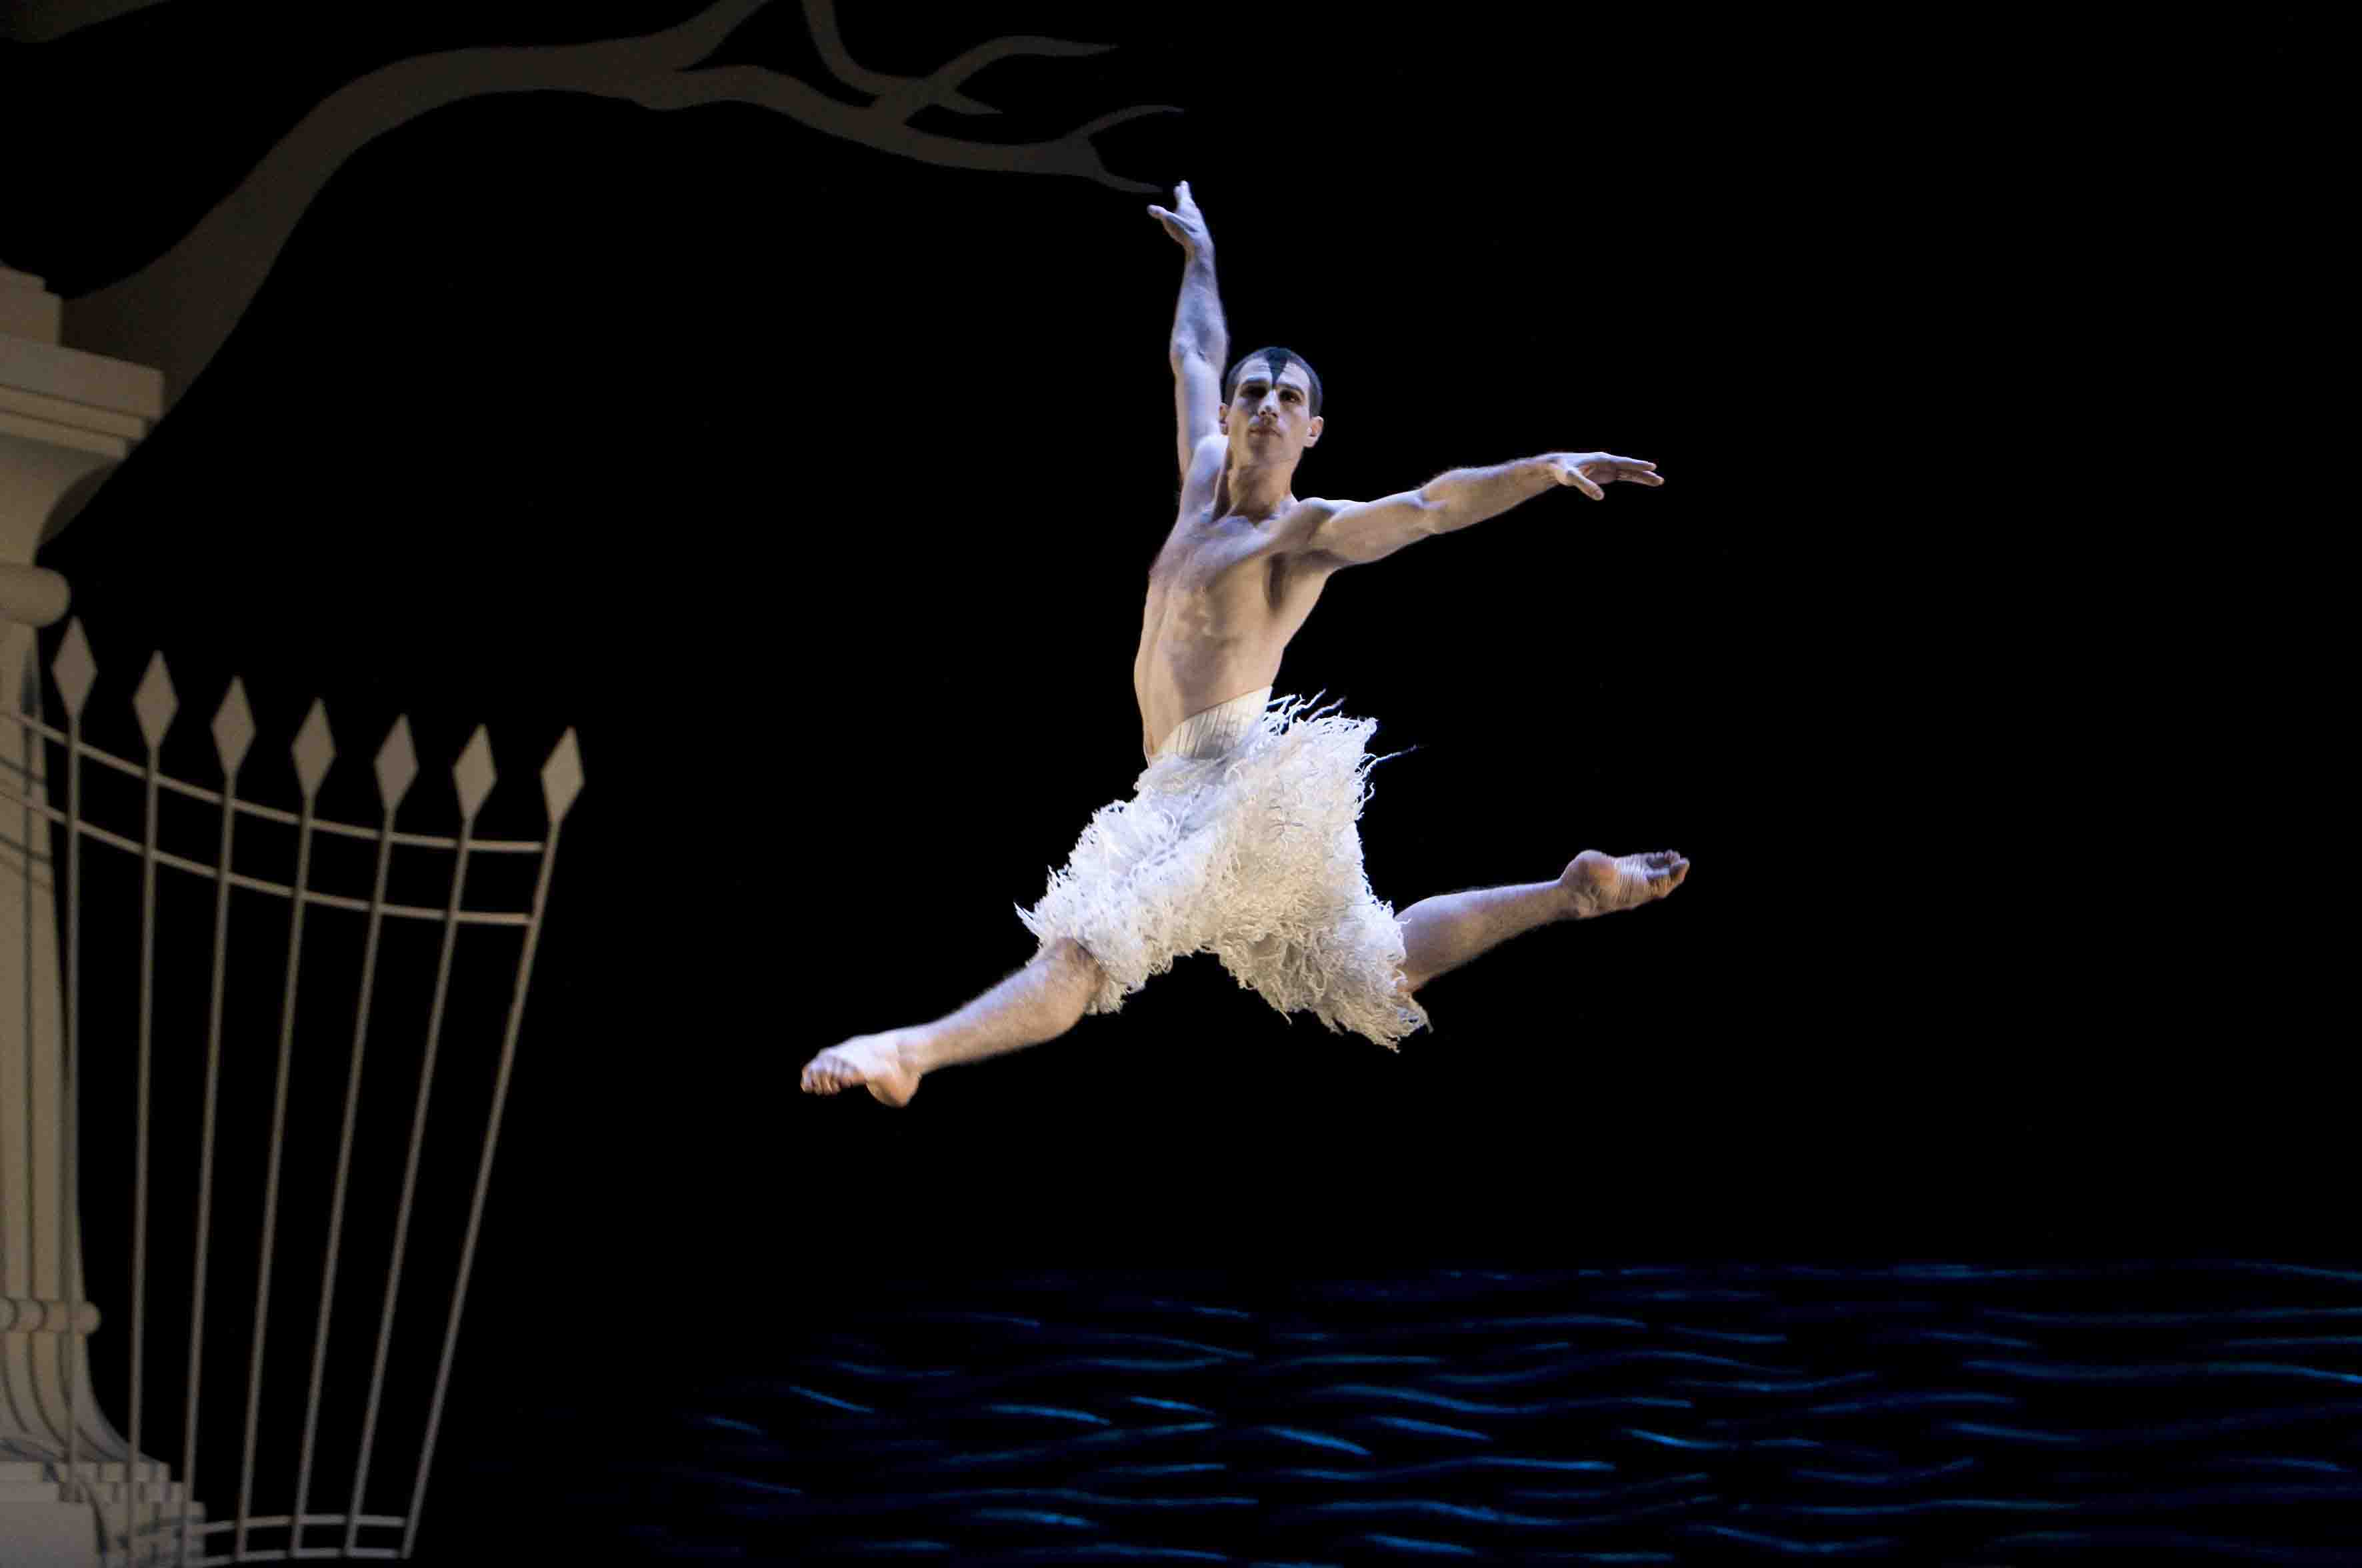 Matthew Bourne's Swan Lake 2rrr cropped.jpg